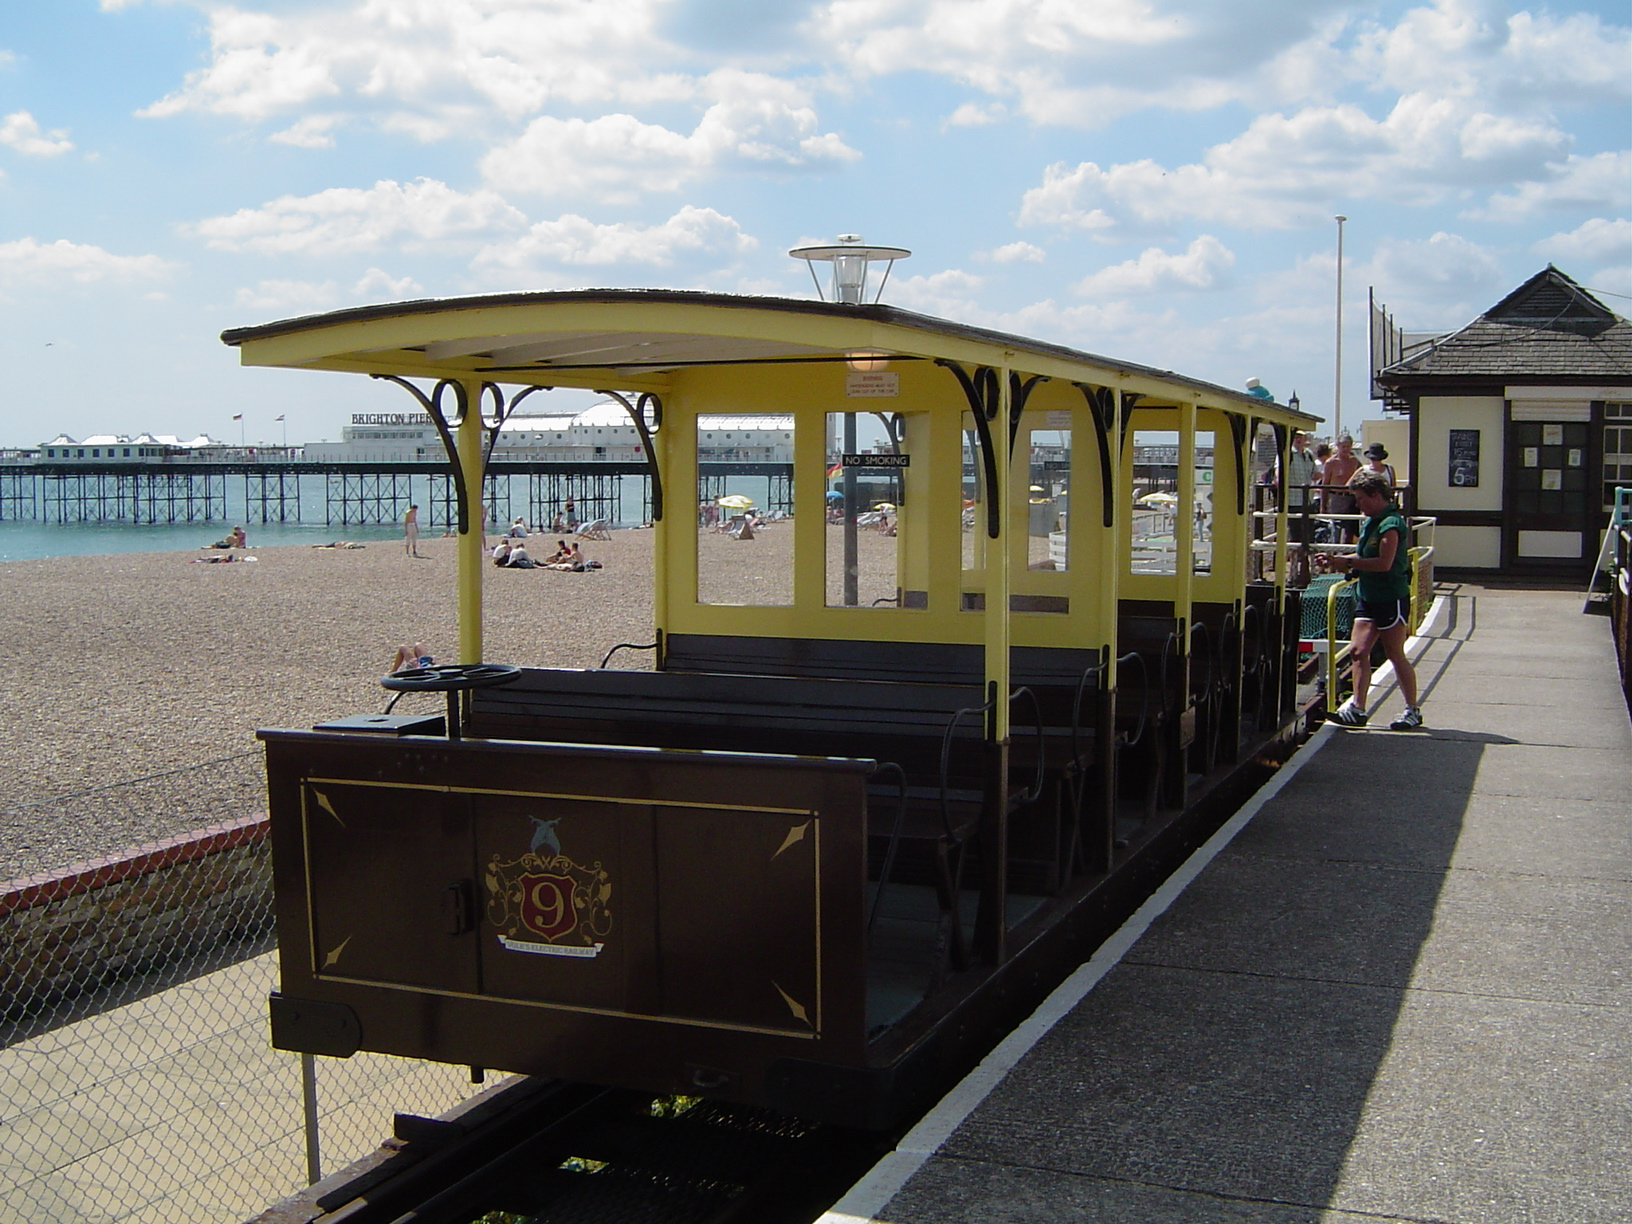 Volks Electric Railway Brighton EHA 85